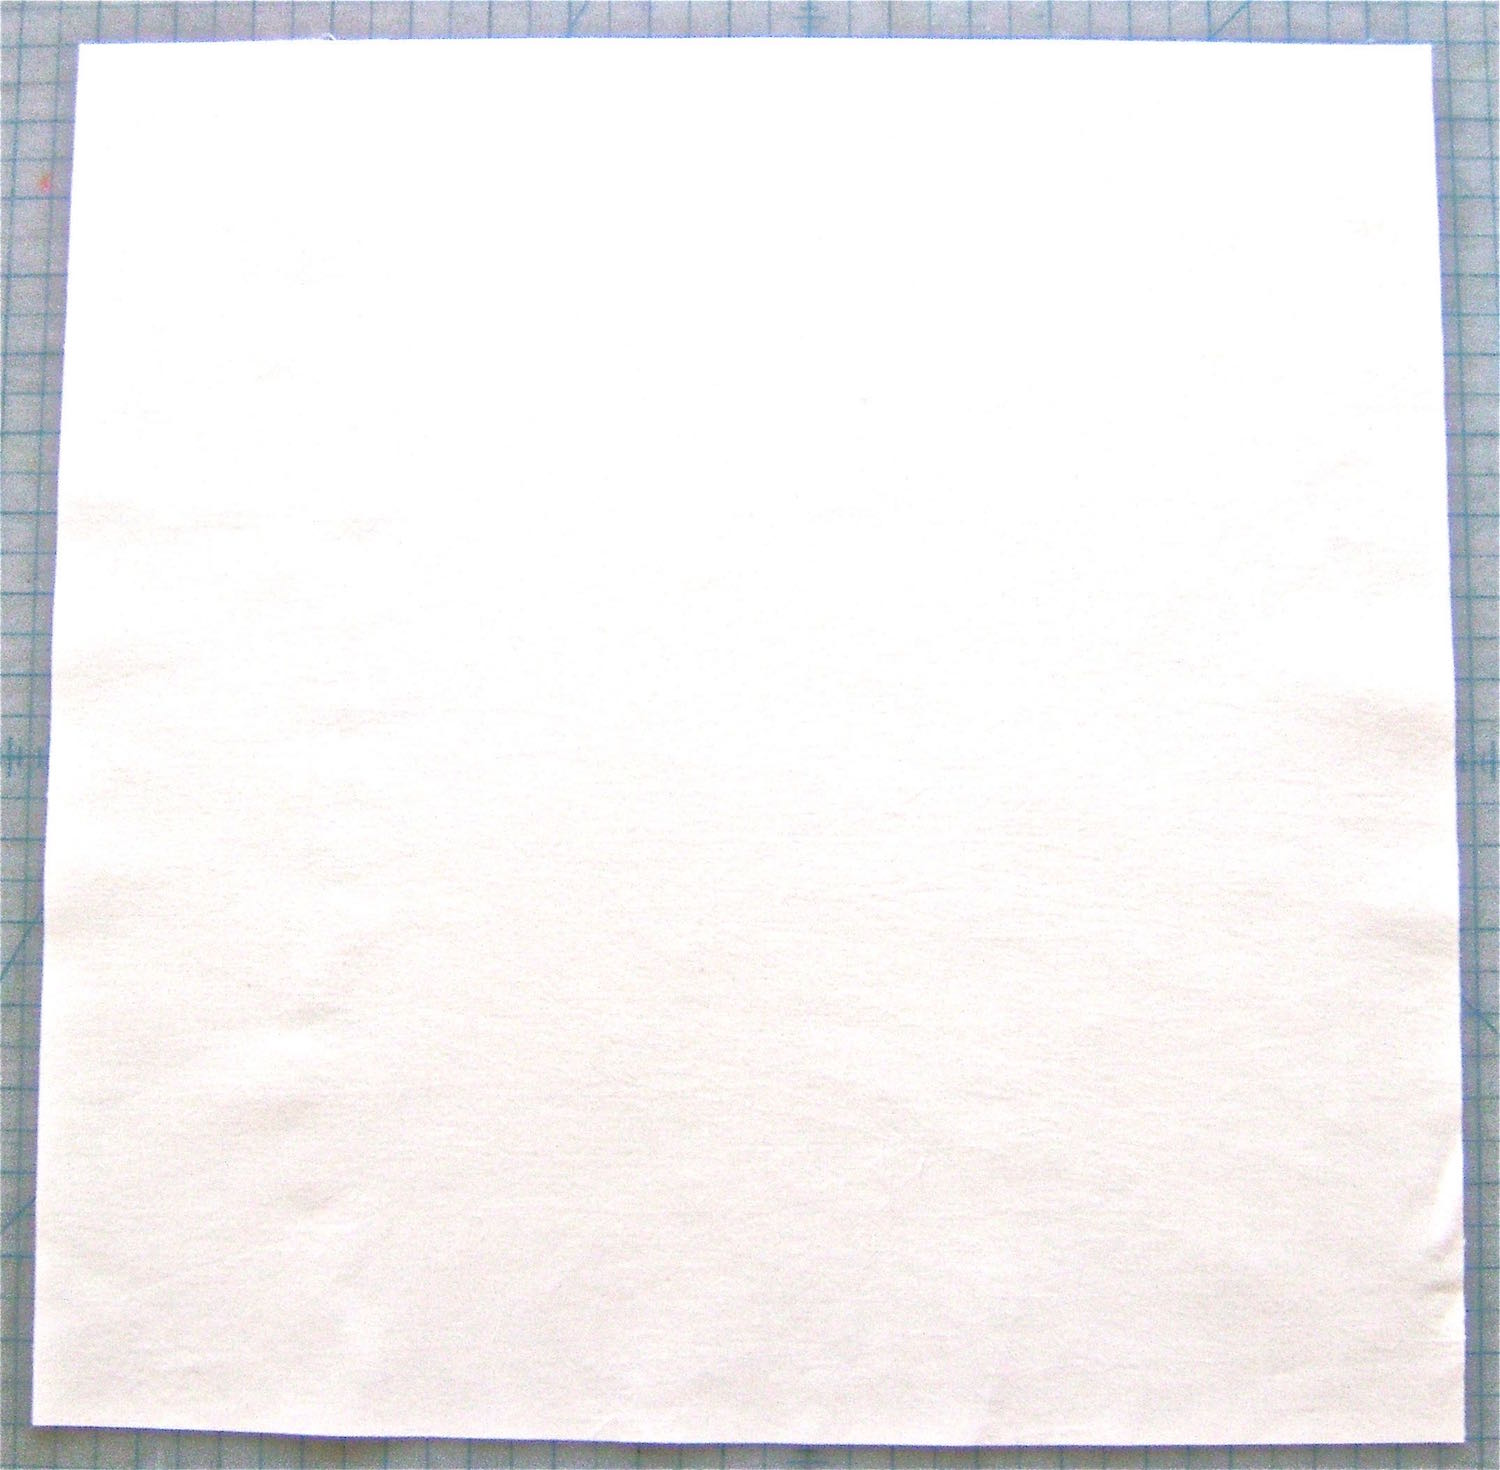 """step 1 - Cut the peach fabric into a 17"""" square. Iron fusible interfacing on the wrong side."""